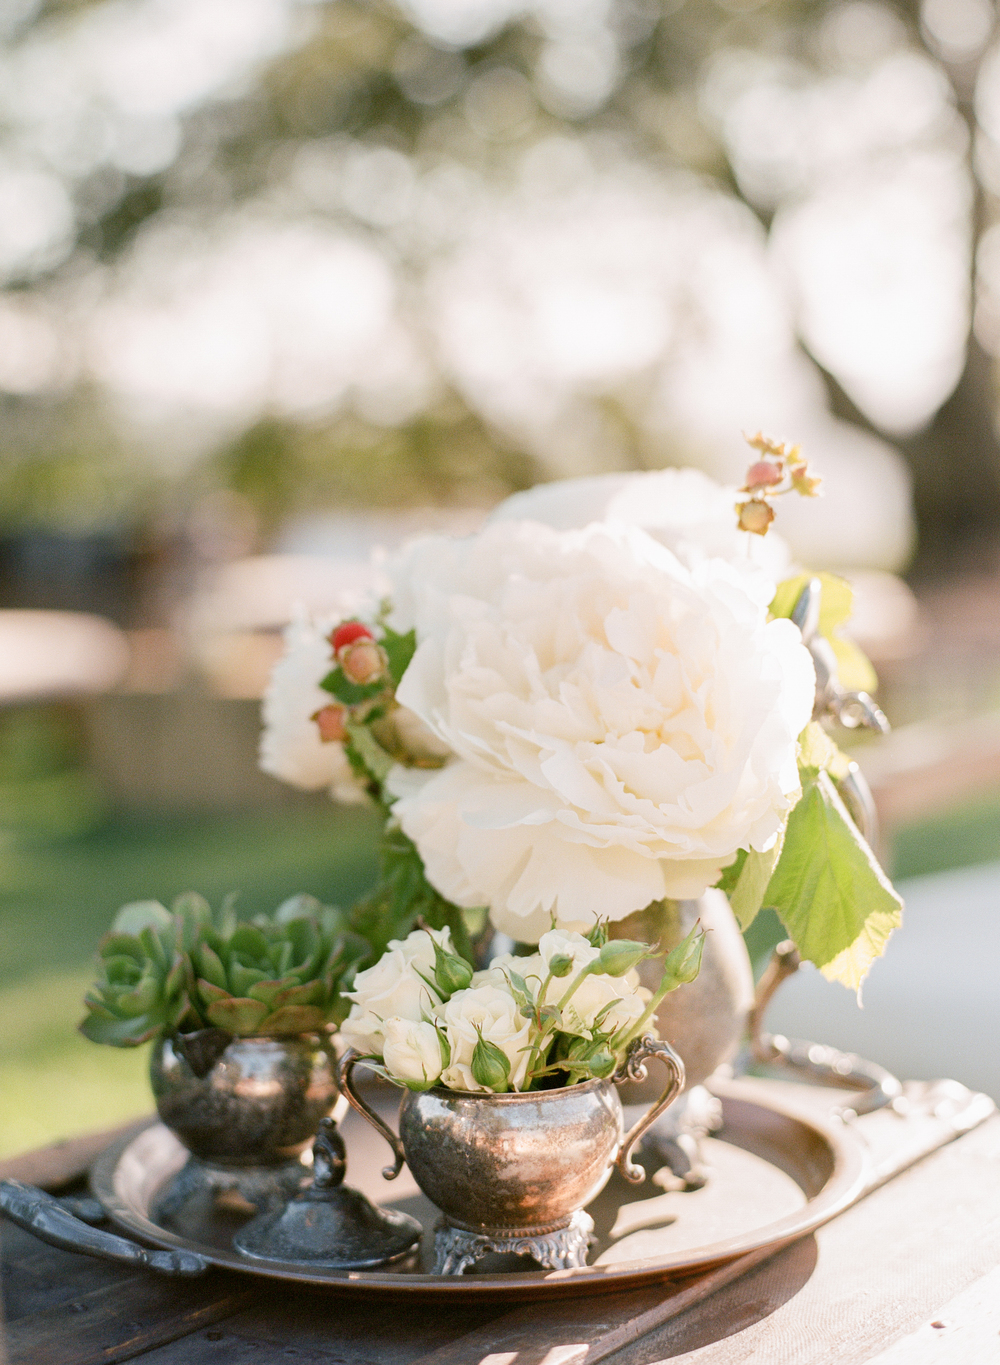 Sylvie-Gil-film-destination-photography-Kunde-winery-Napa-Valley-elegant-shabby-chic-vintage-antique-tray-vases-succulents-florals